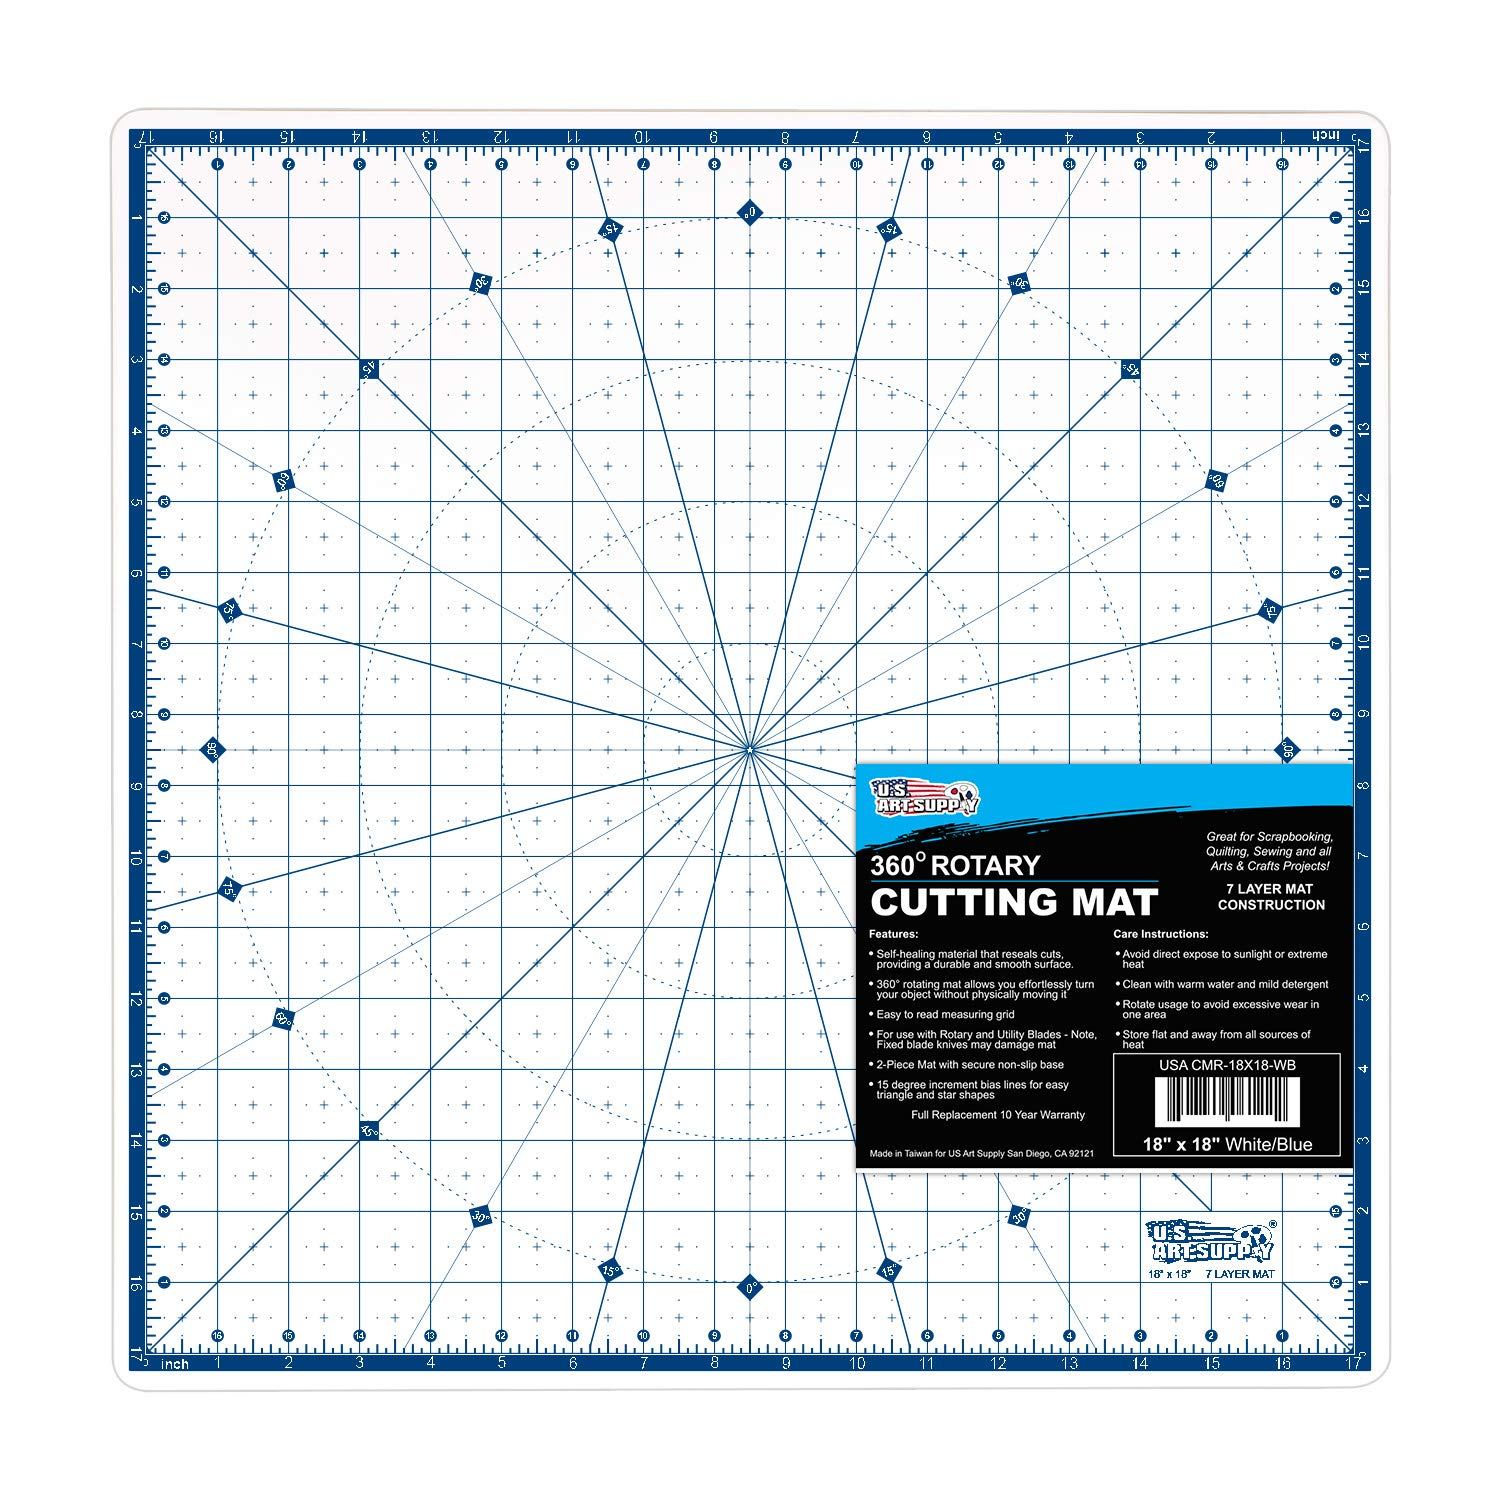 U.S. Art Supply 18'' x 18'' Rotary WHITE/BLUE High Contrast Professional Self Healing 7-Layer Durable Non-Slip PVC Cutting Mat Great for Scrapbooking, Quilting, Sewing and all Arts & Crafts Projects